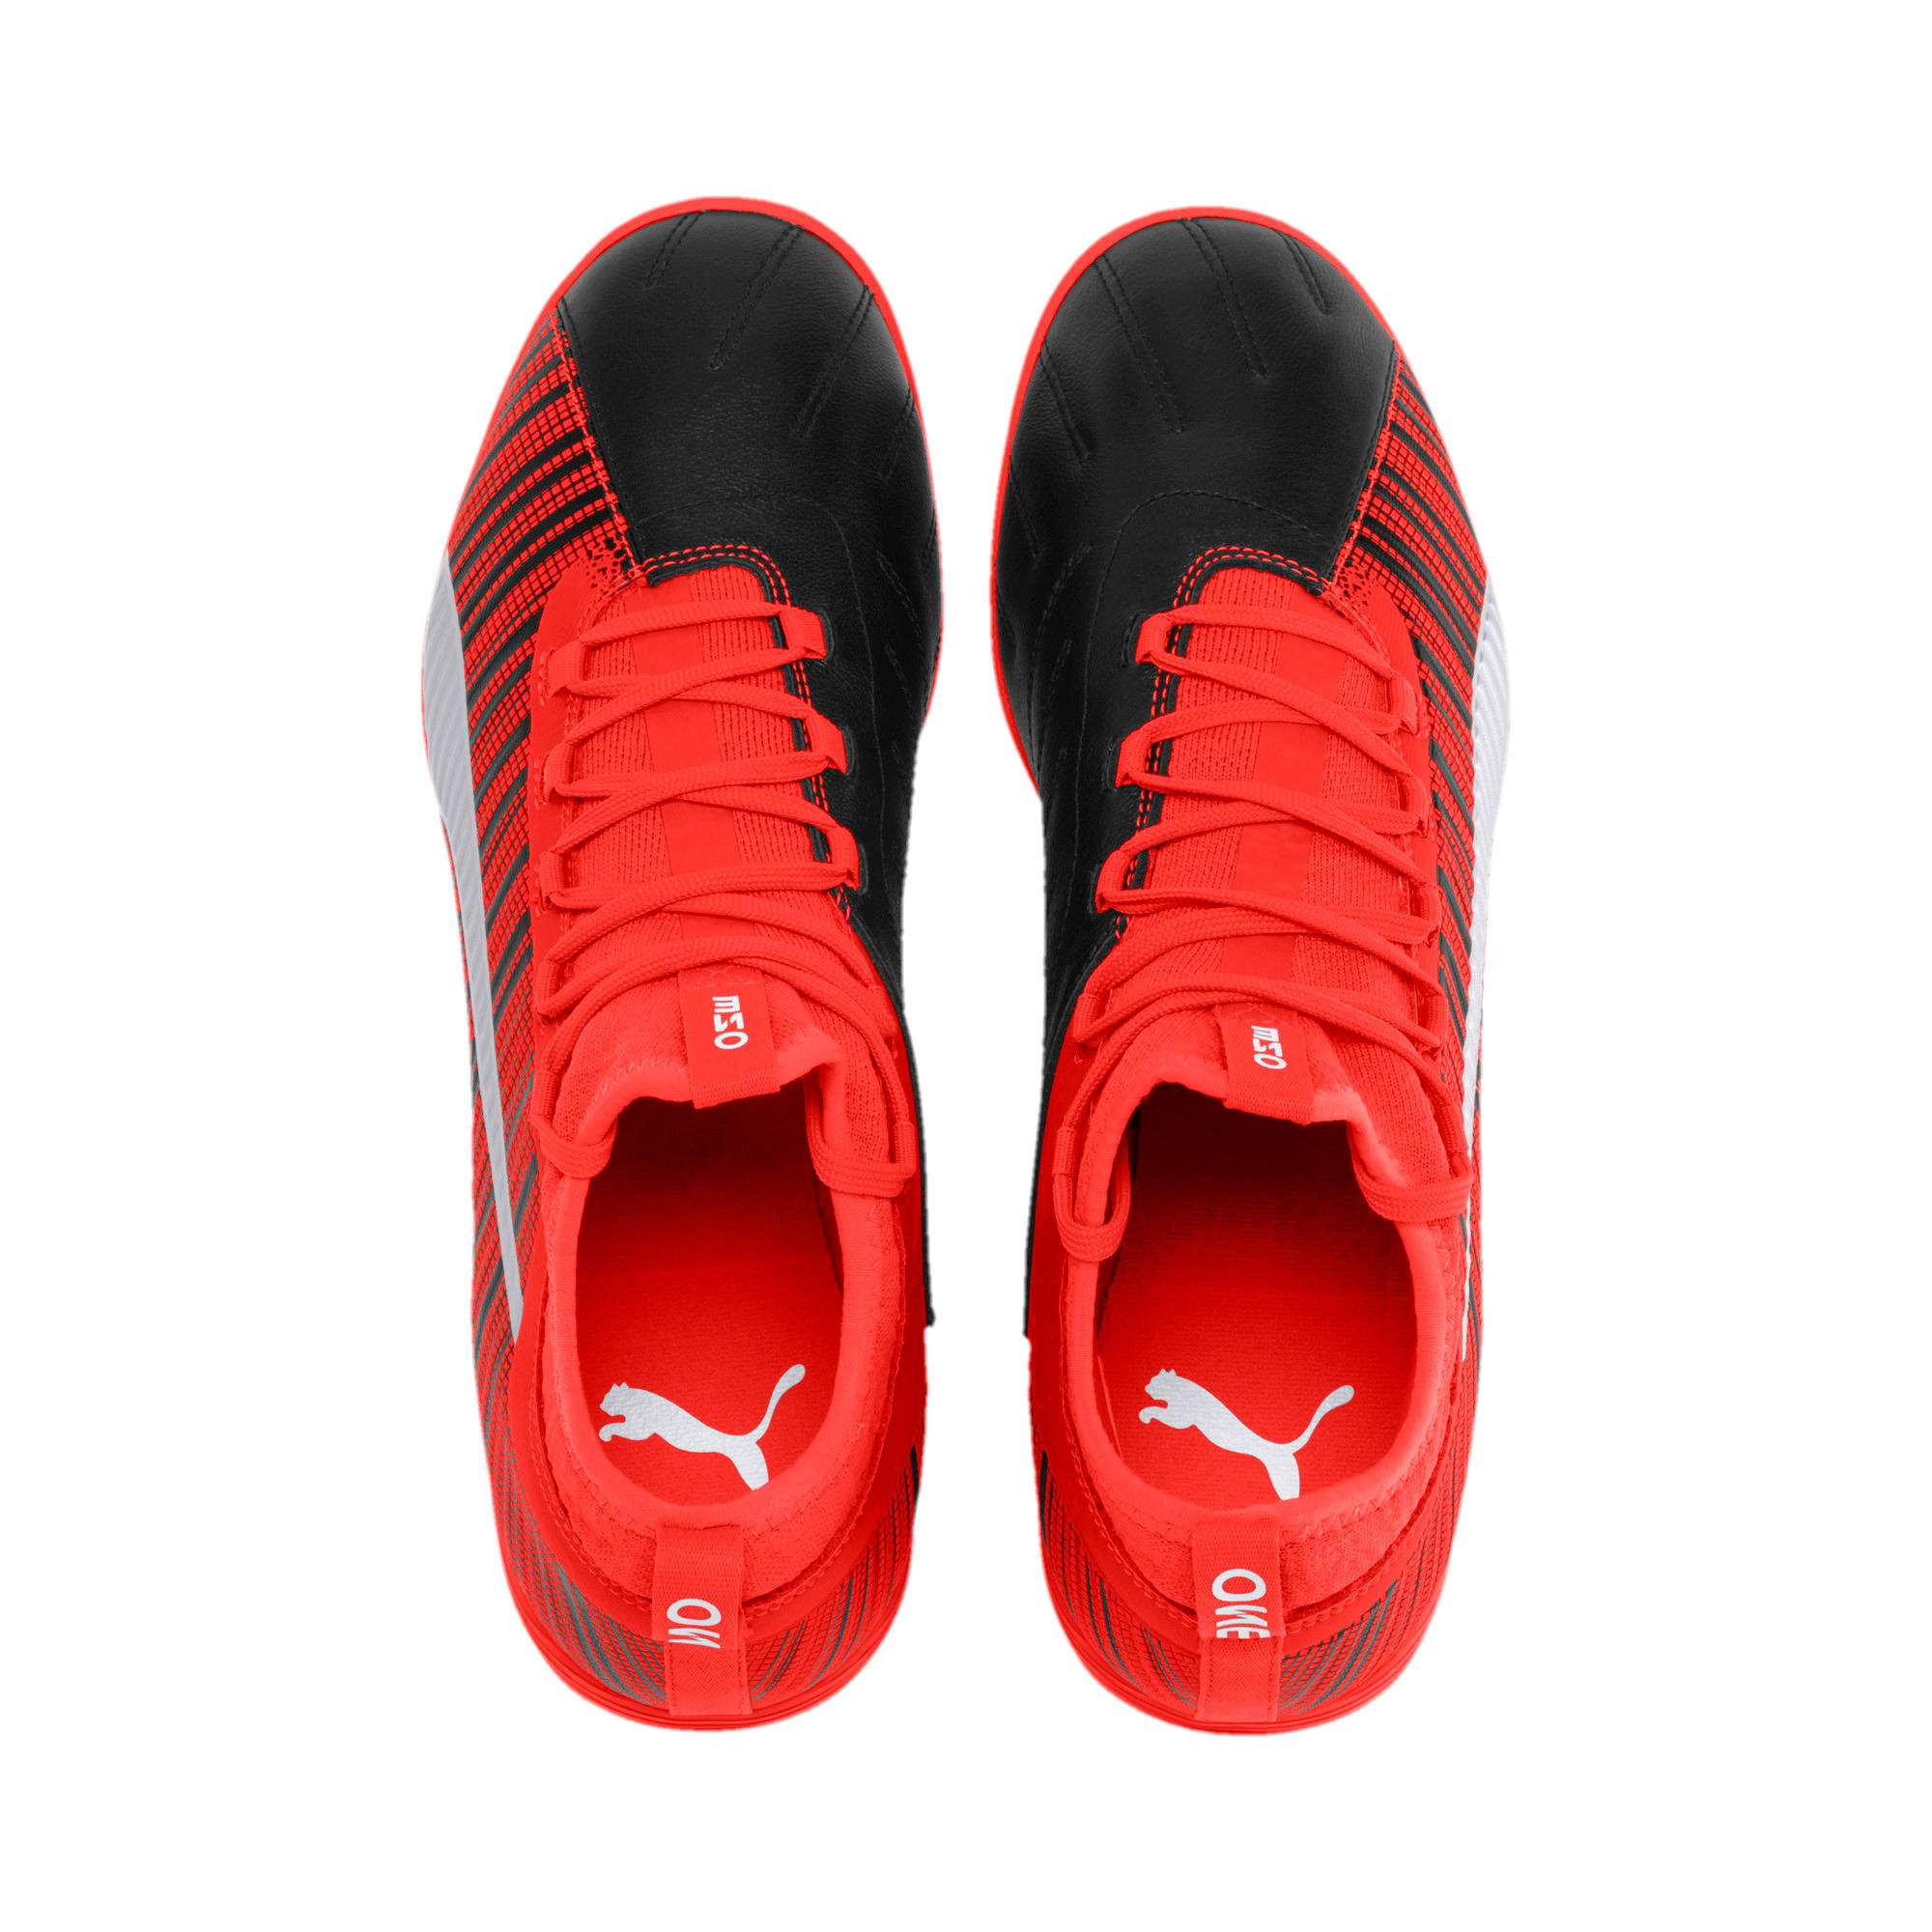 Thumbnail 7 of PUMA ONE 5.3 IT Soccer Shoes, Black-Nrgy Red-Aged Silver, medium